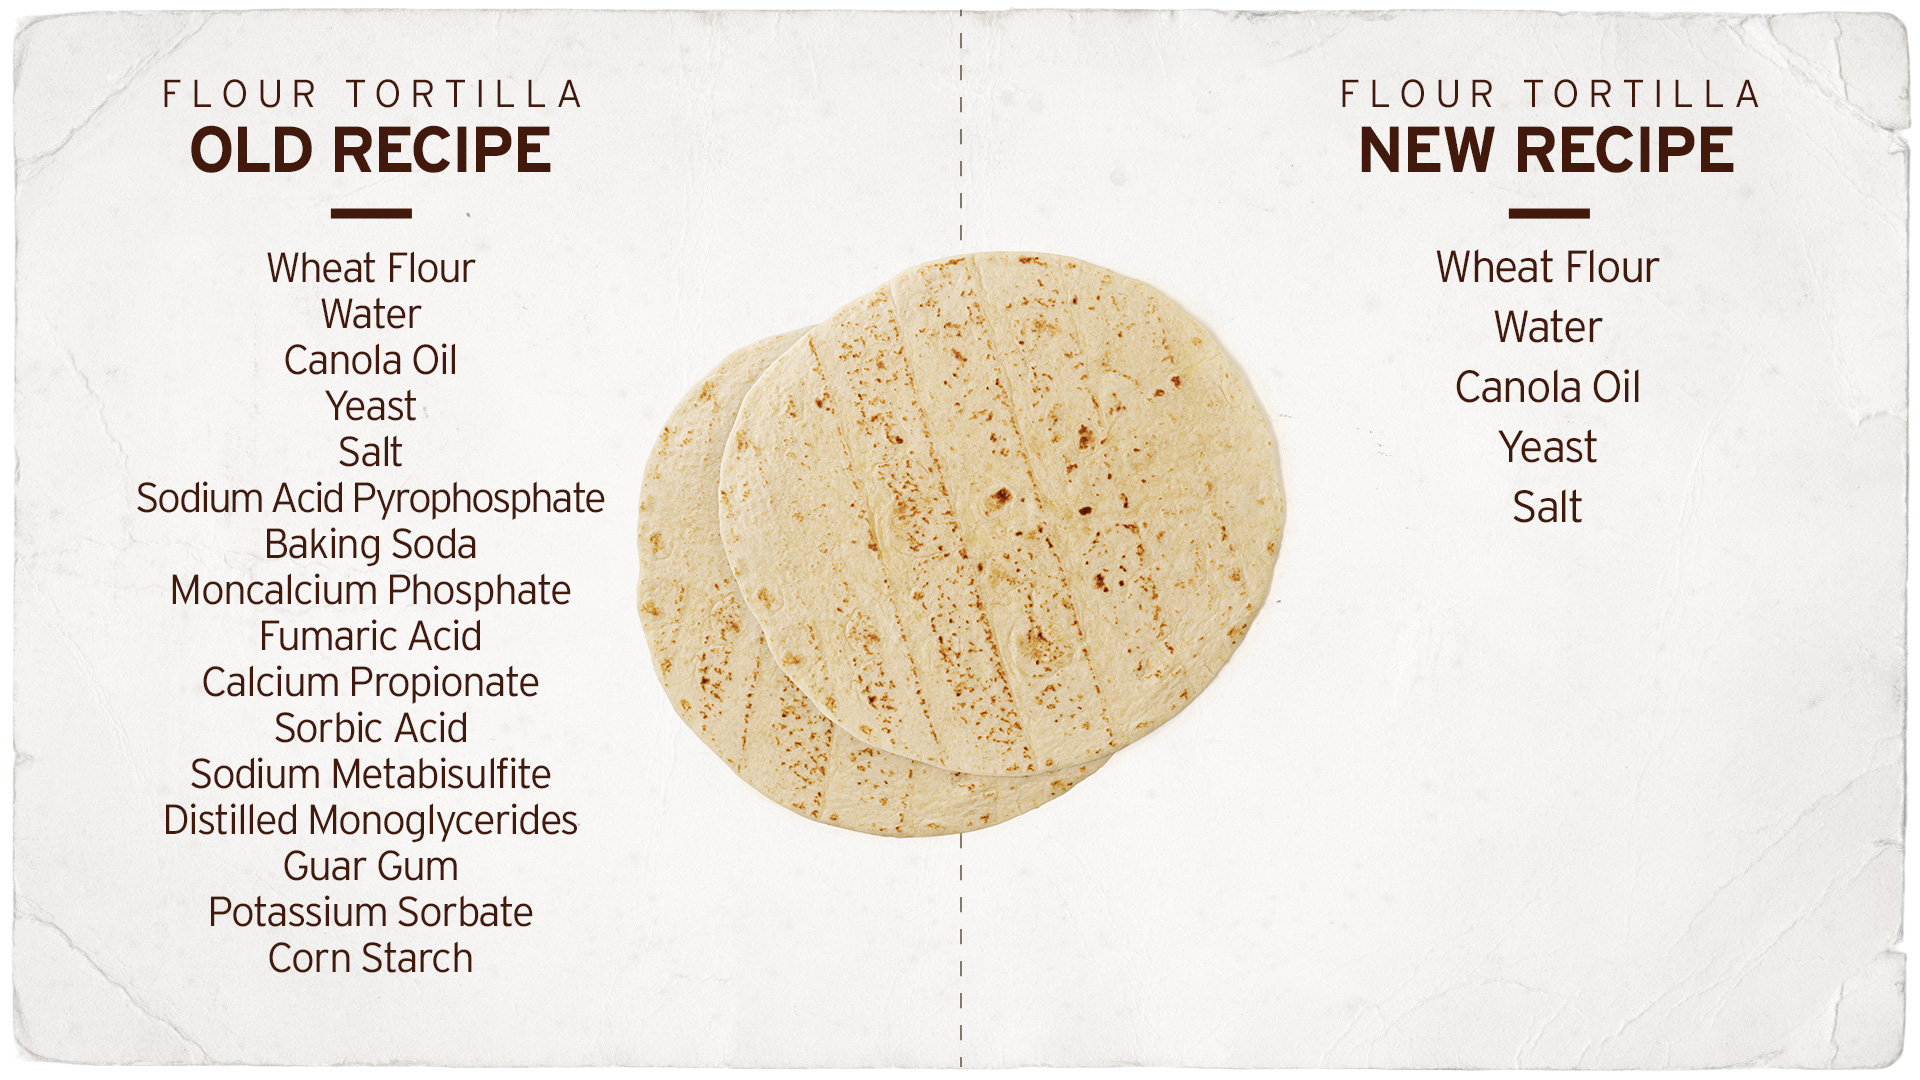 A list of the old four tortilla recipe and a list of the new flour tortilla recipe, now with just five ingredients: wheat flour, water, non-gmo canola oil, yeast and salt.